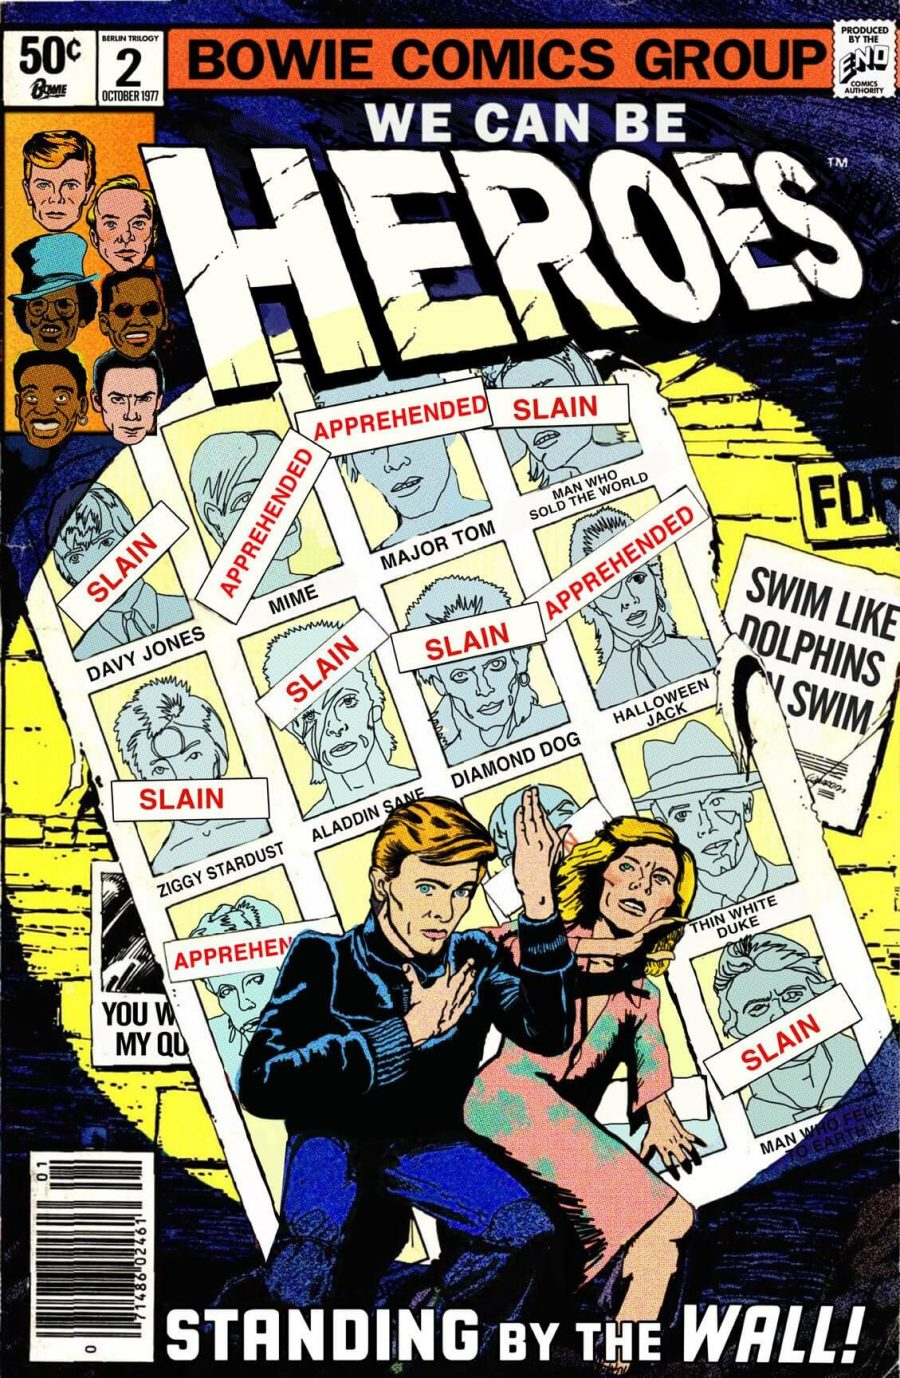 heroes_bowie-1-e1554091155685